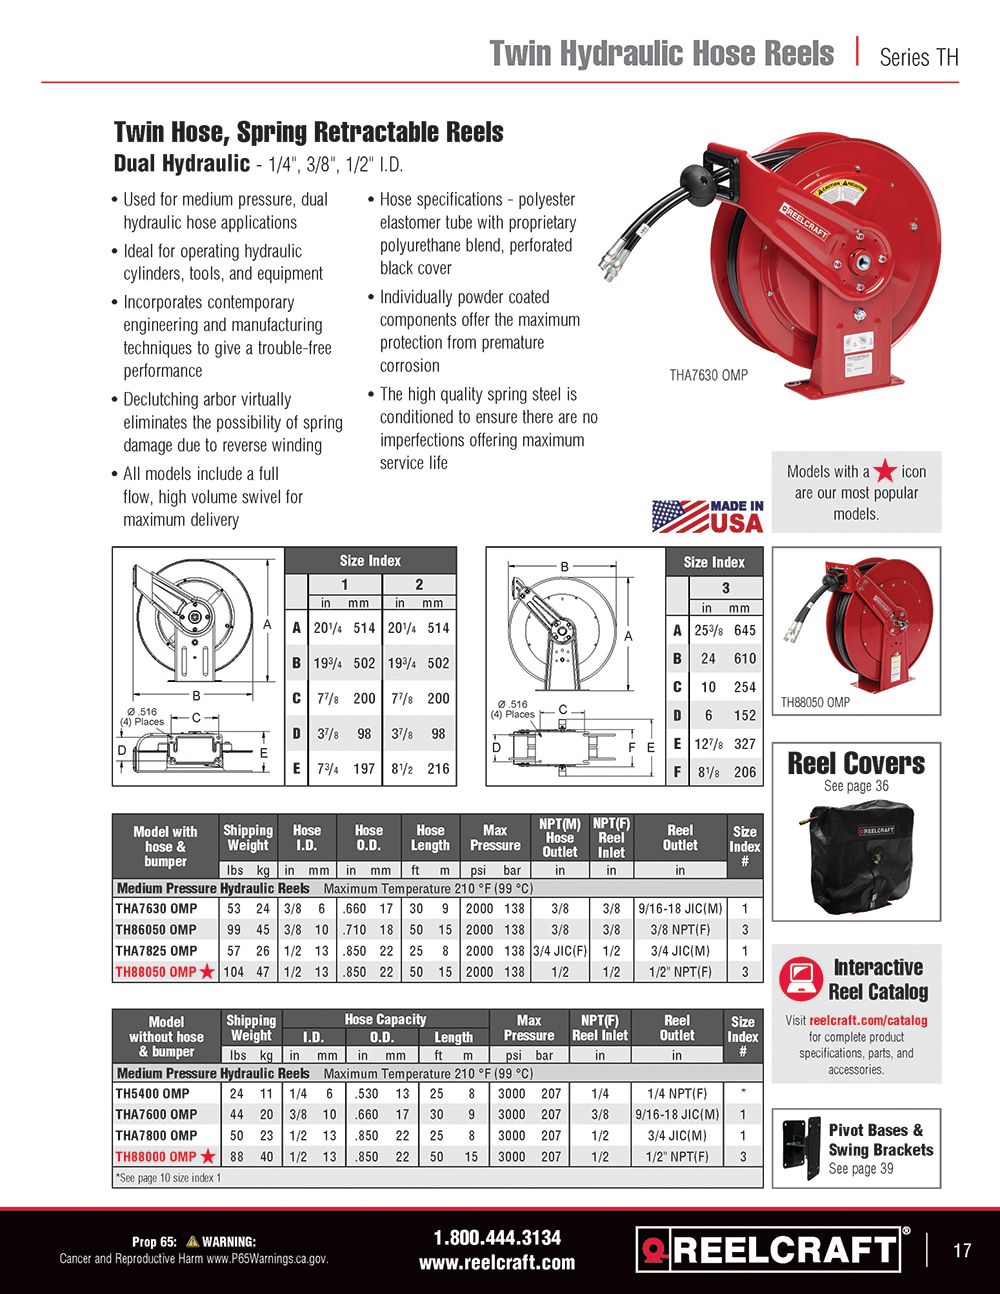 Reelcraft Catalog Page 17 - Series TH Hose Reels